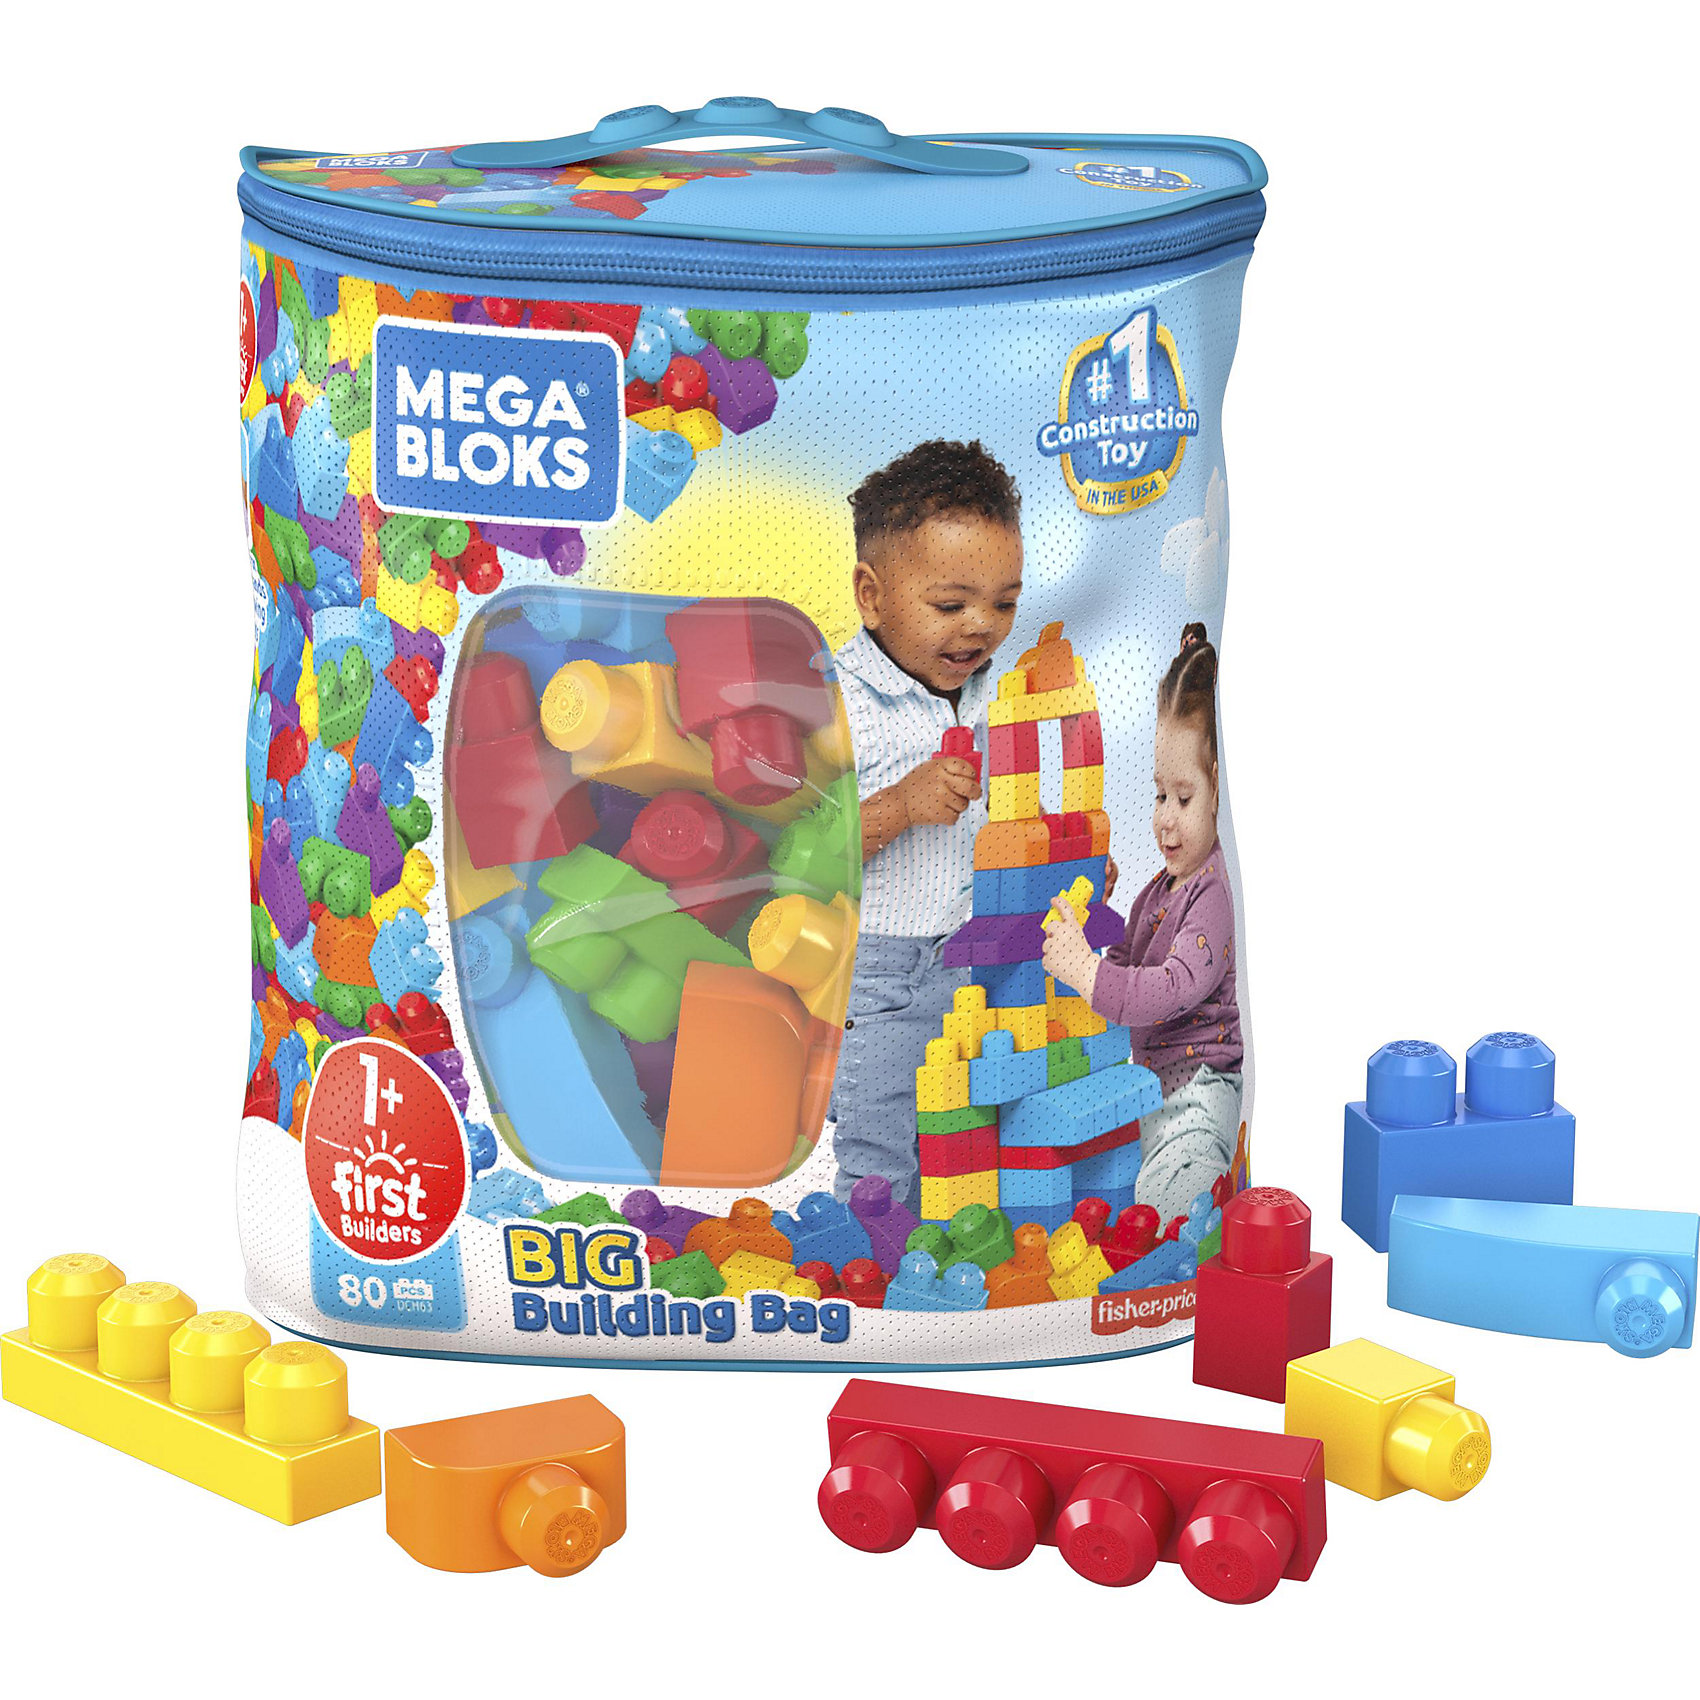 MEGA BLOKS Конструктор 80 деталей First Builders, MEGA BLOKS конструктор mega bloks first builders deluxe